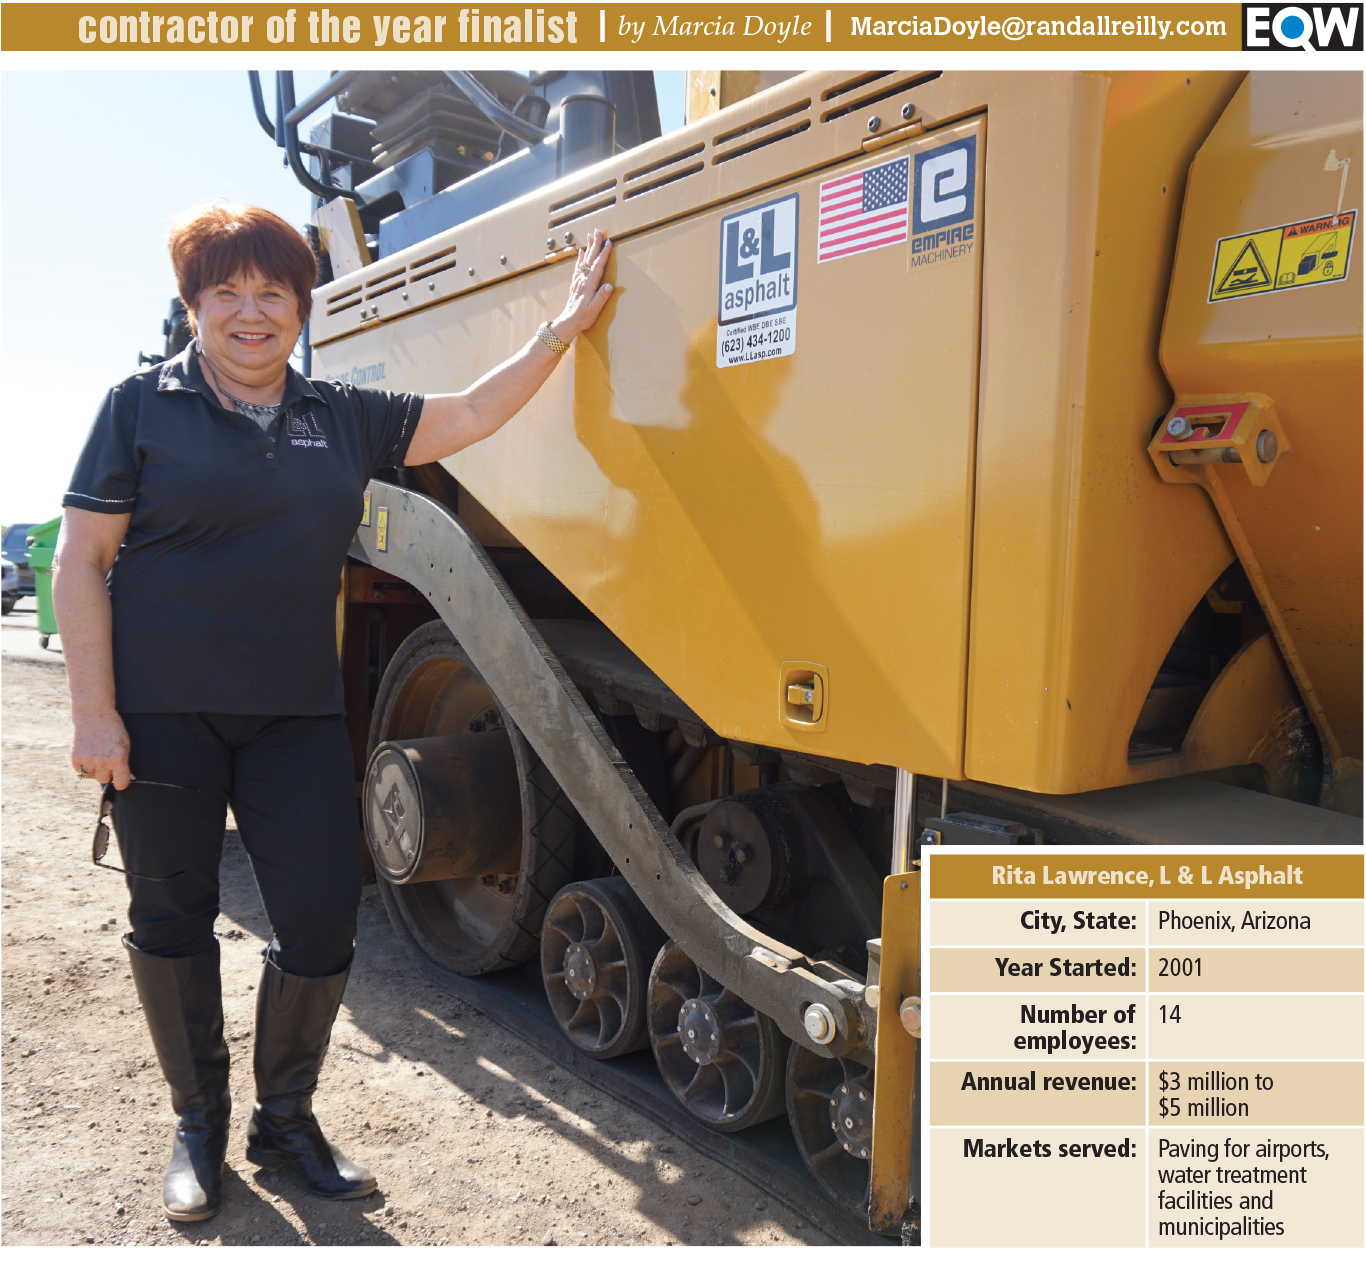 Facing an empty bank account Rita Lawrence started a paving business to